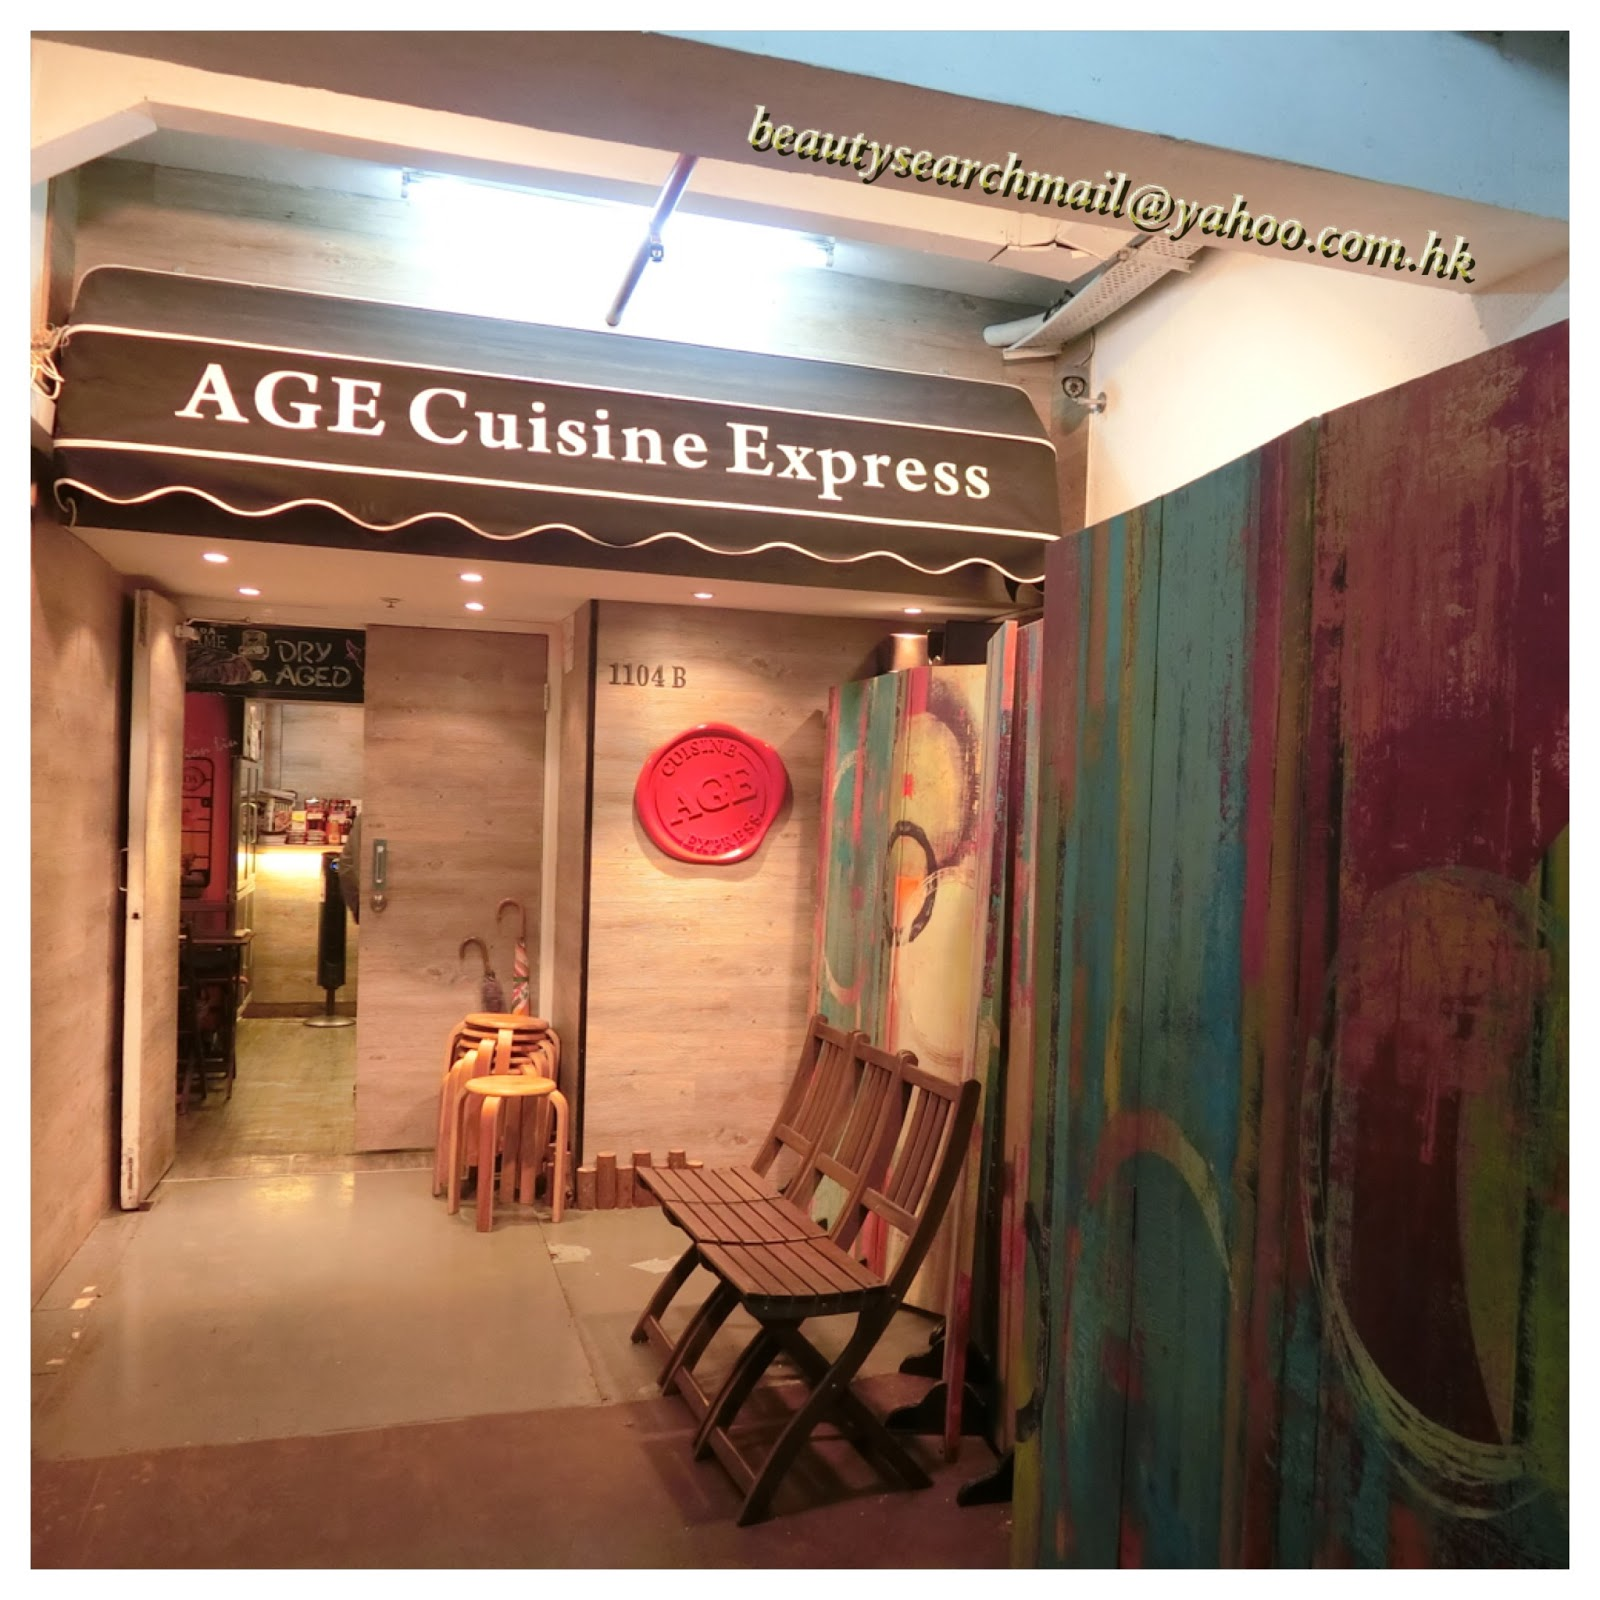 Age cuisine express beautysearch u blog for Age cuisine express